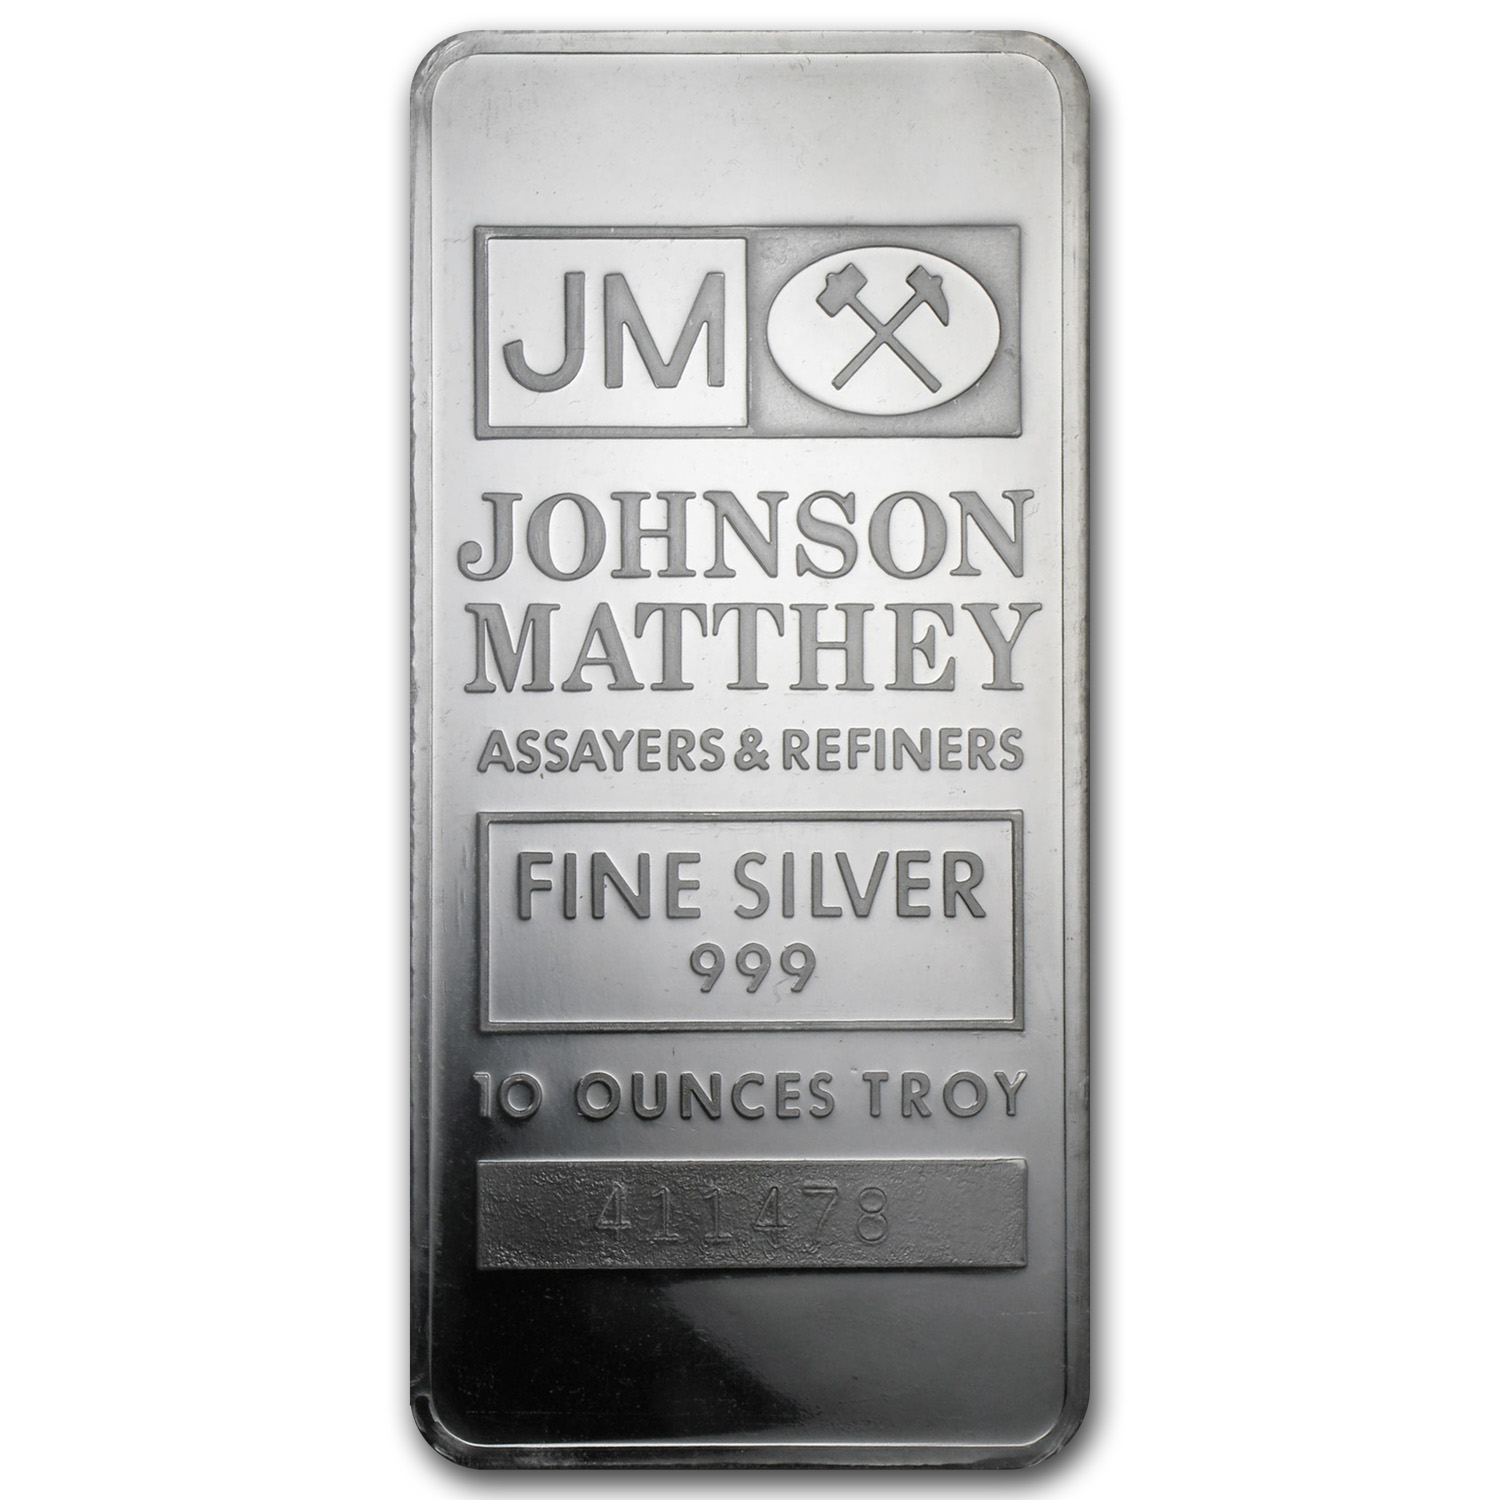 10 oz Silver Bar - Johnson Matthey (Sealed/Very Nice)